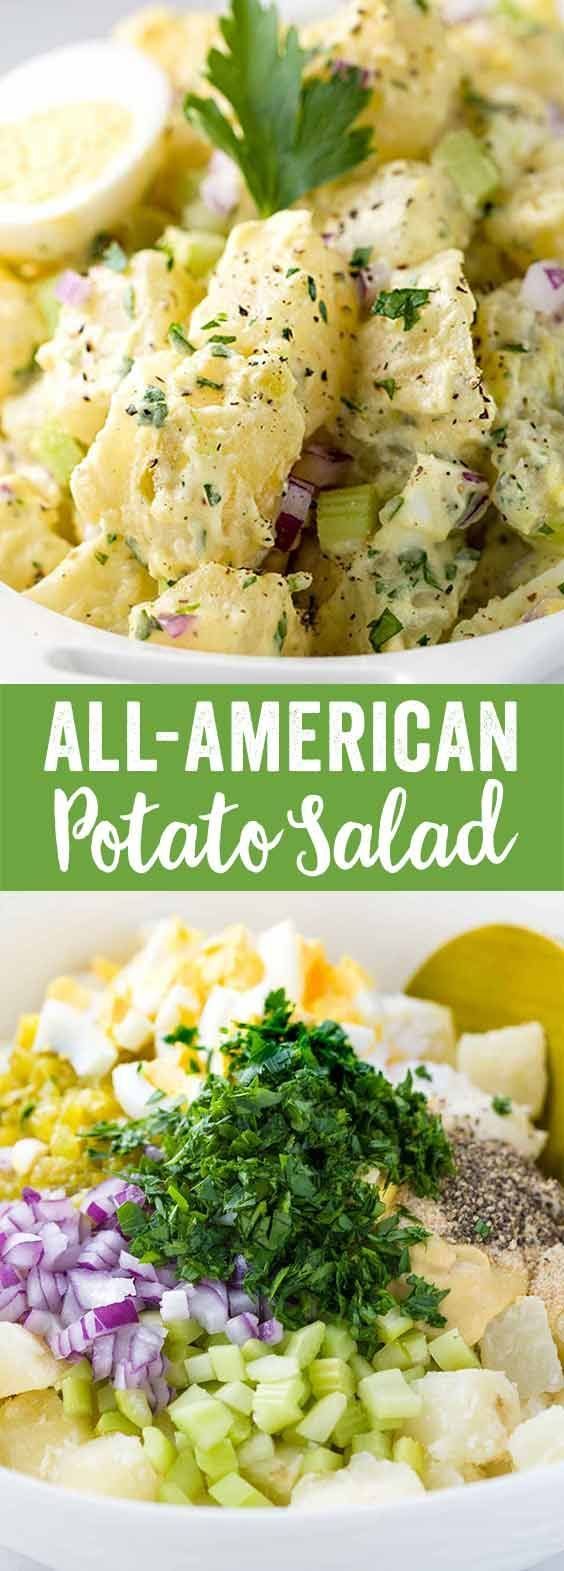 This potato salad recipe is so tasty that I used it as a base to make a healthier creamy potato salad with yogurt. No matter what variation you try, using this basic potato cooking technique will give you delicious results every time!